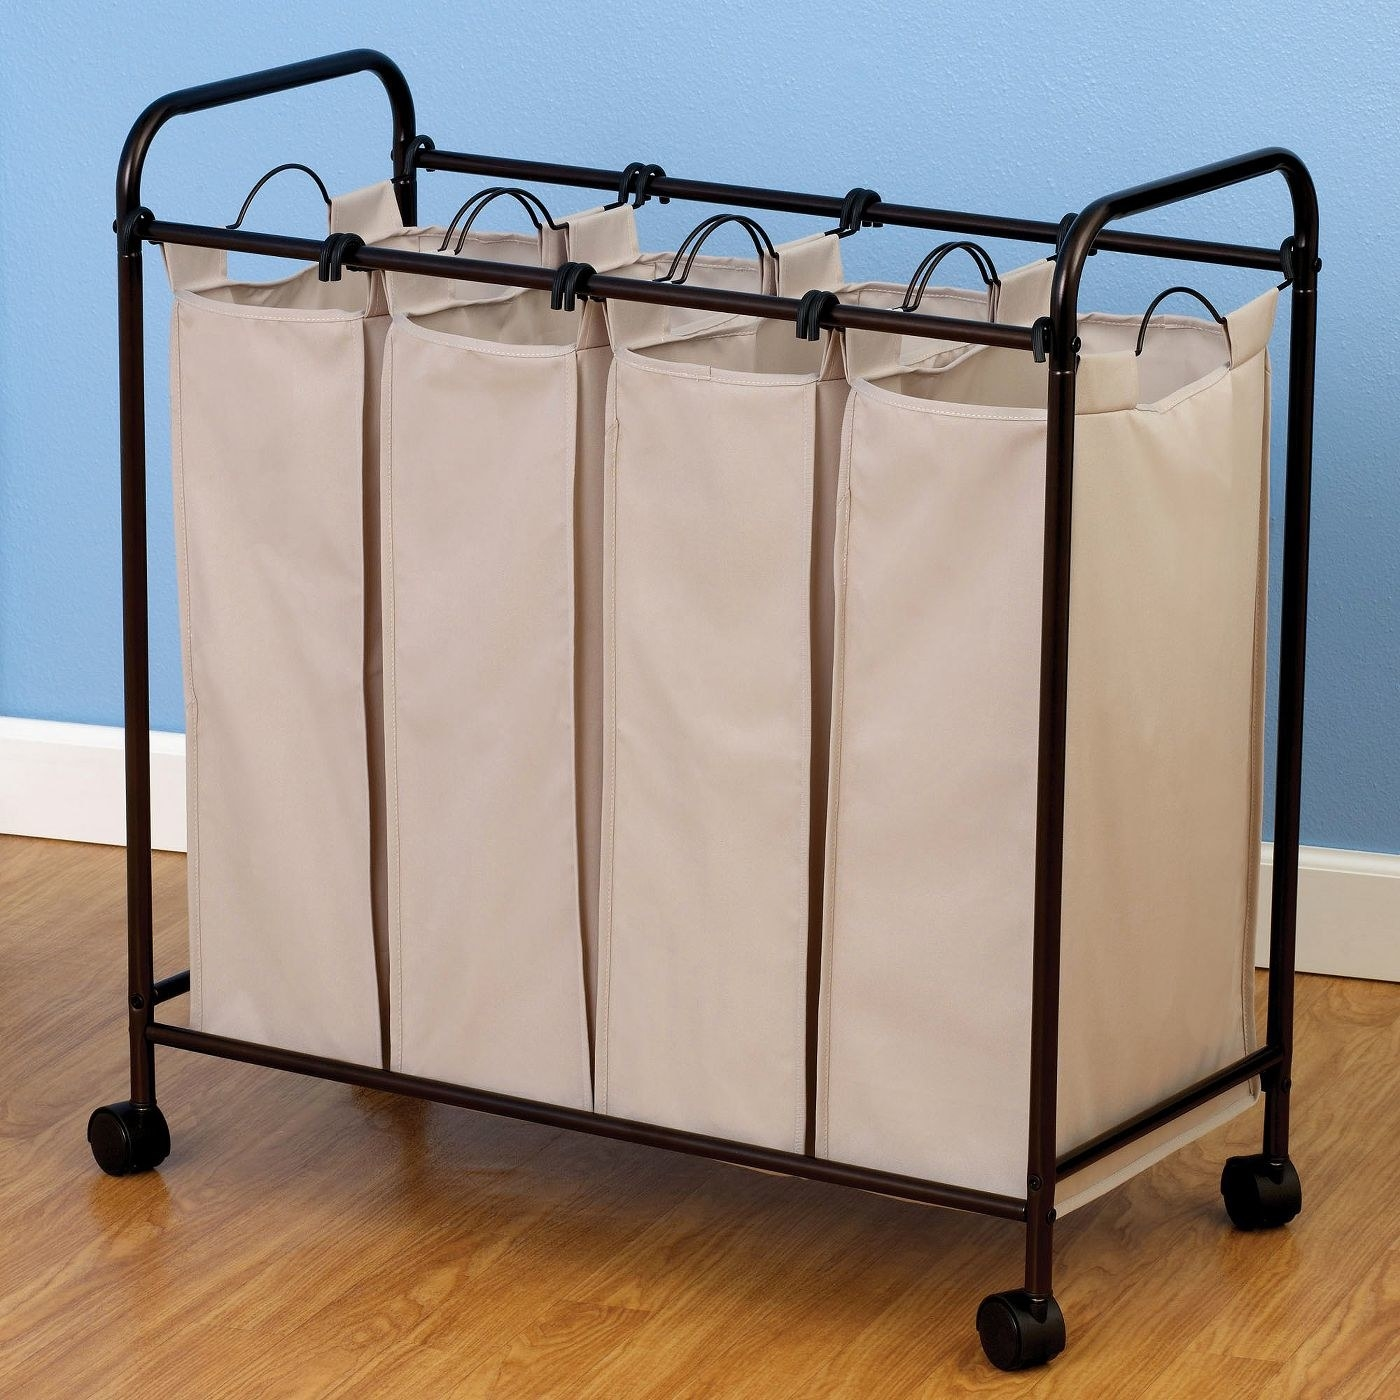 The laundry hamper with four small rectangular bags